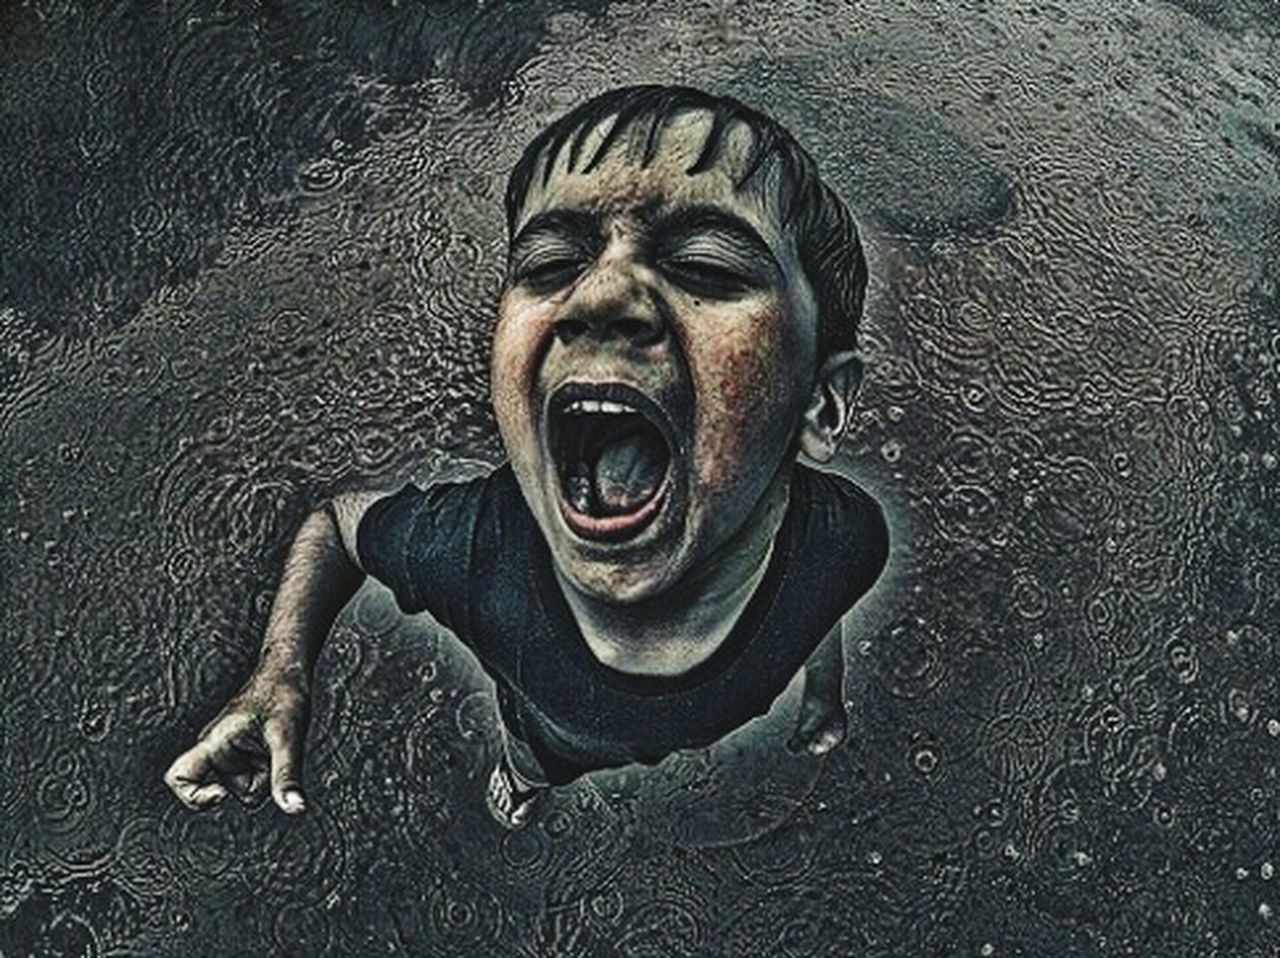 Fine Art Photography Shouting Fight For Right Expressions Top View Rain Rainy Days Rain Drops Drastic Edit Close-up Feelings Dark Thoughtful Body Language Angry Boy Loudthougts EyeEm Best Shots Eye4photography  EyeEm Gallery top angle view Detail Check This Out